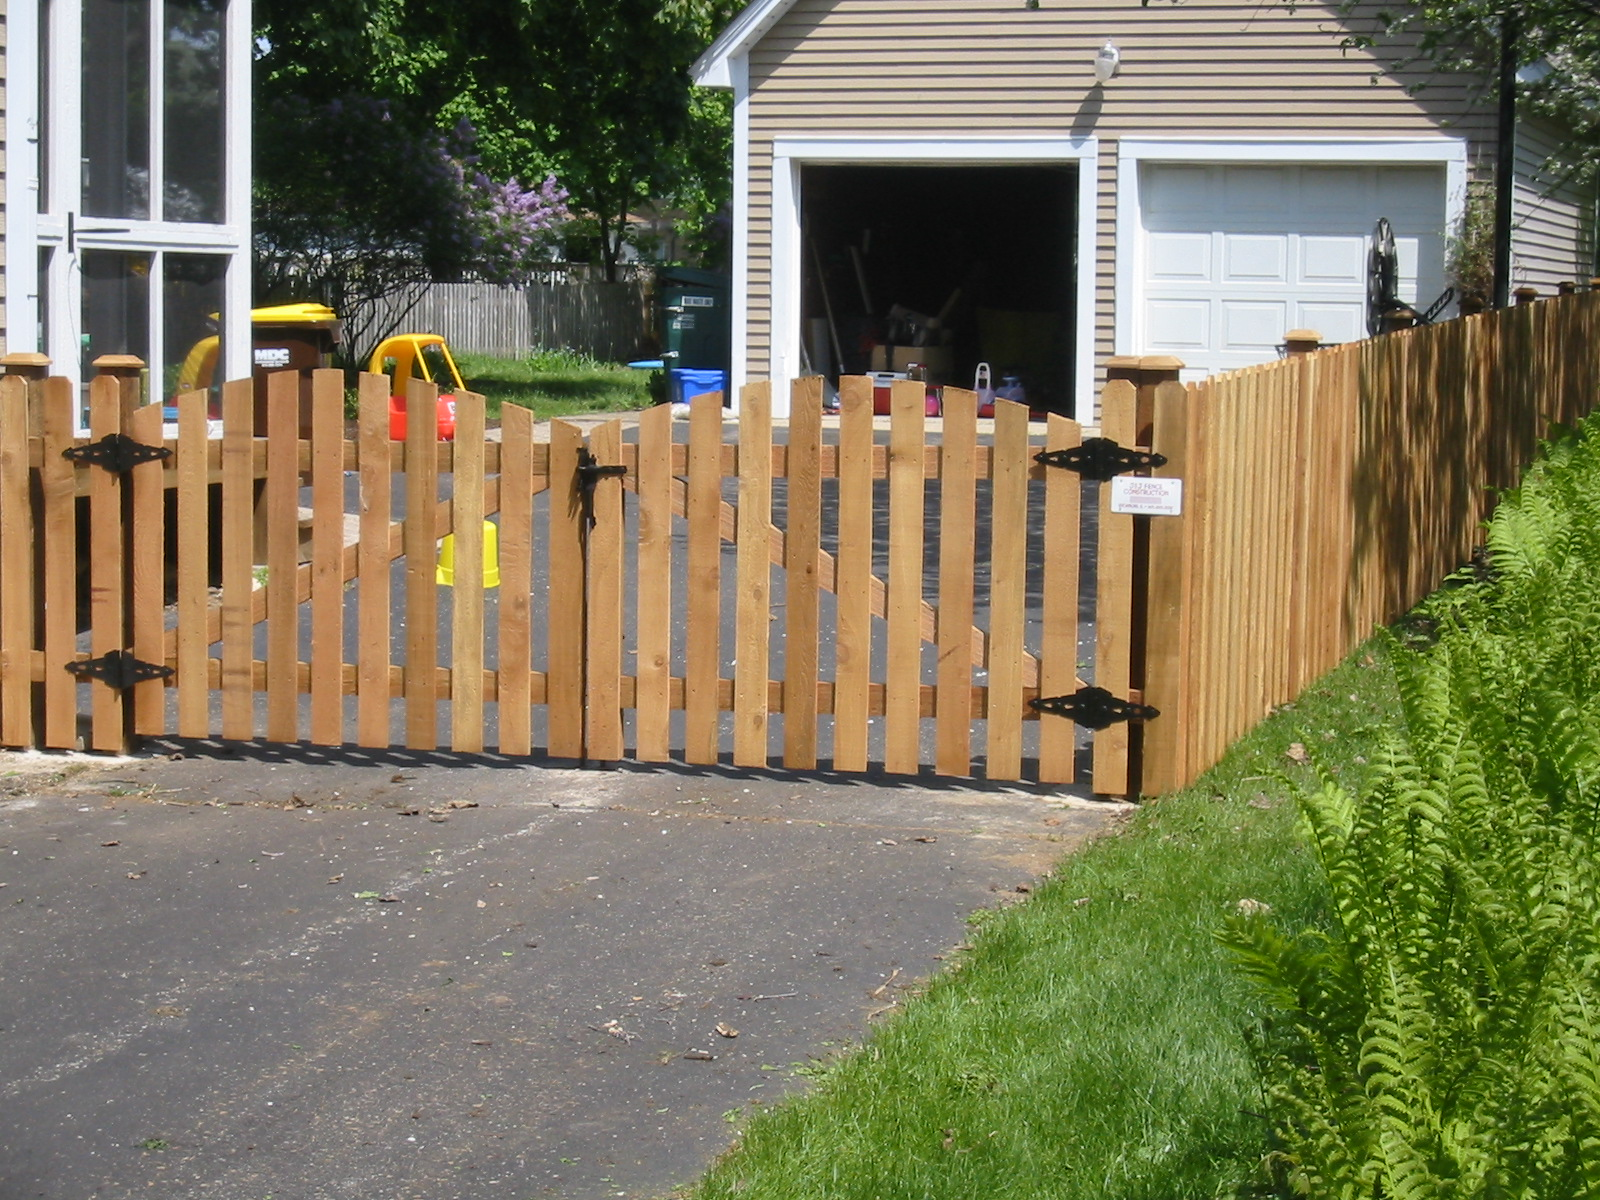 j and j construction fence services work pictures. Black Bedroom Furniture Sets. Home Design Ideas